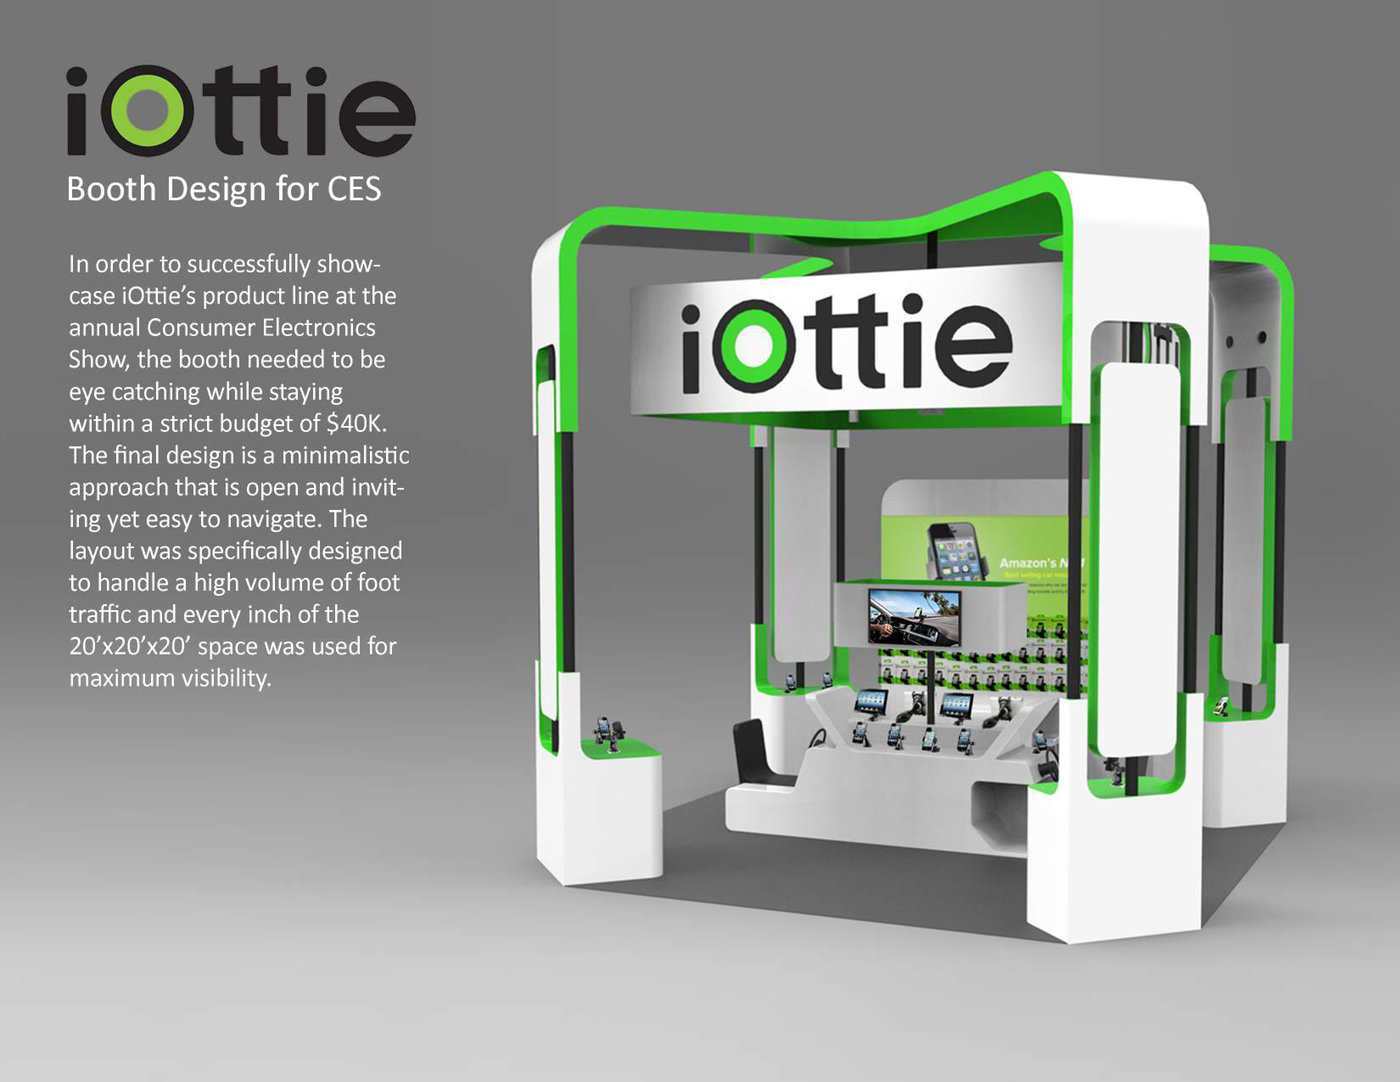 Exhibition Booth Layout : Iottie ces exhibition booth by james byun at coroflot